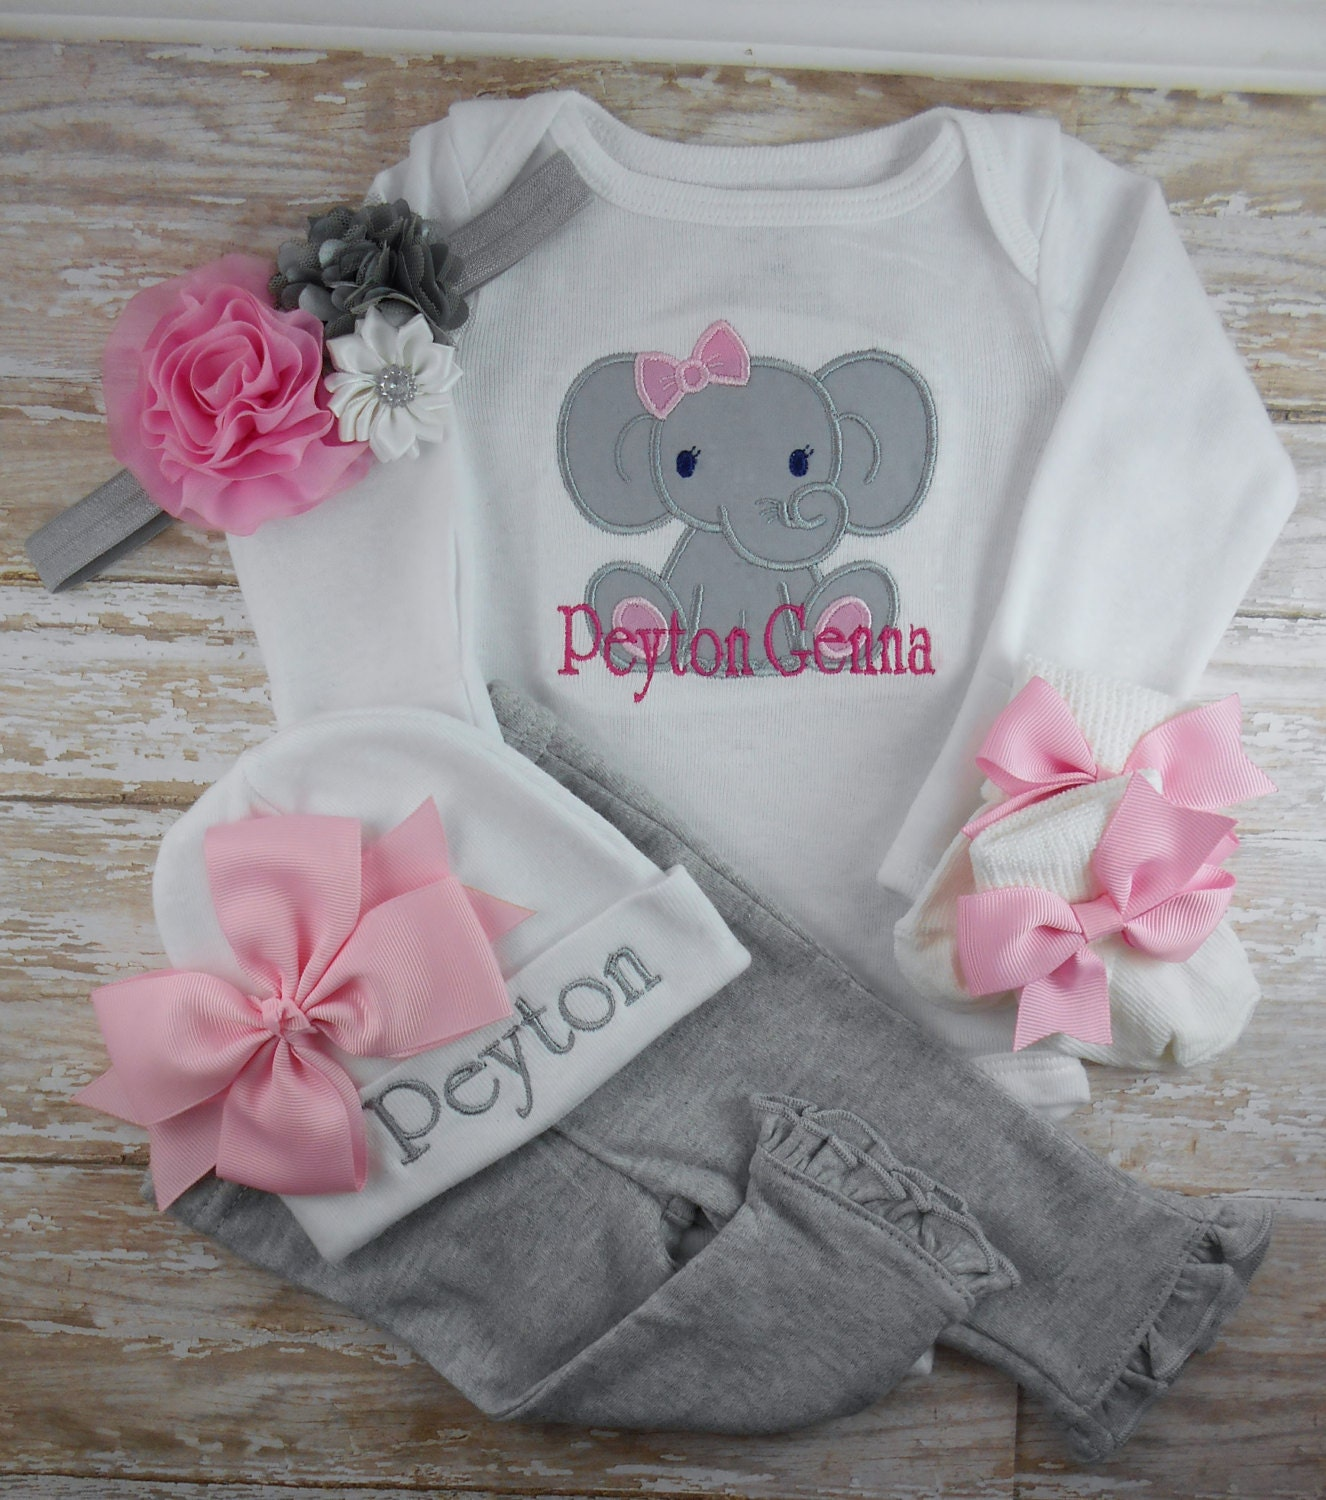 b3acae8b9 Product Features shower gift or take home outfit from the hospital for your  baby girl. 25 Adorable Outfits For Baby's ...